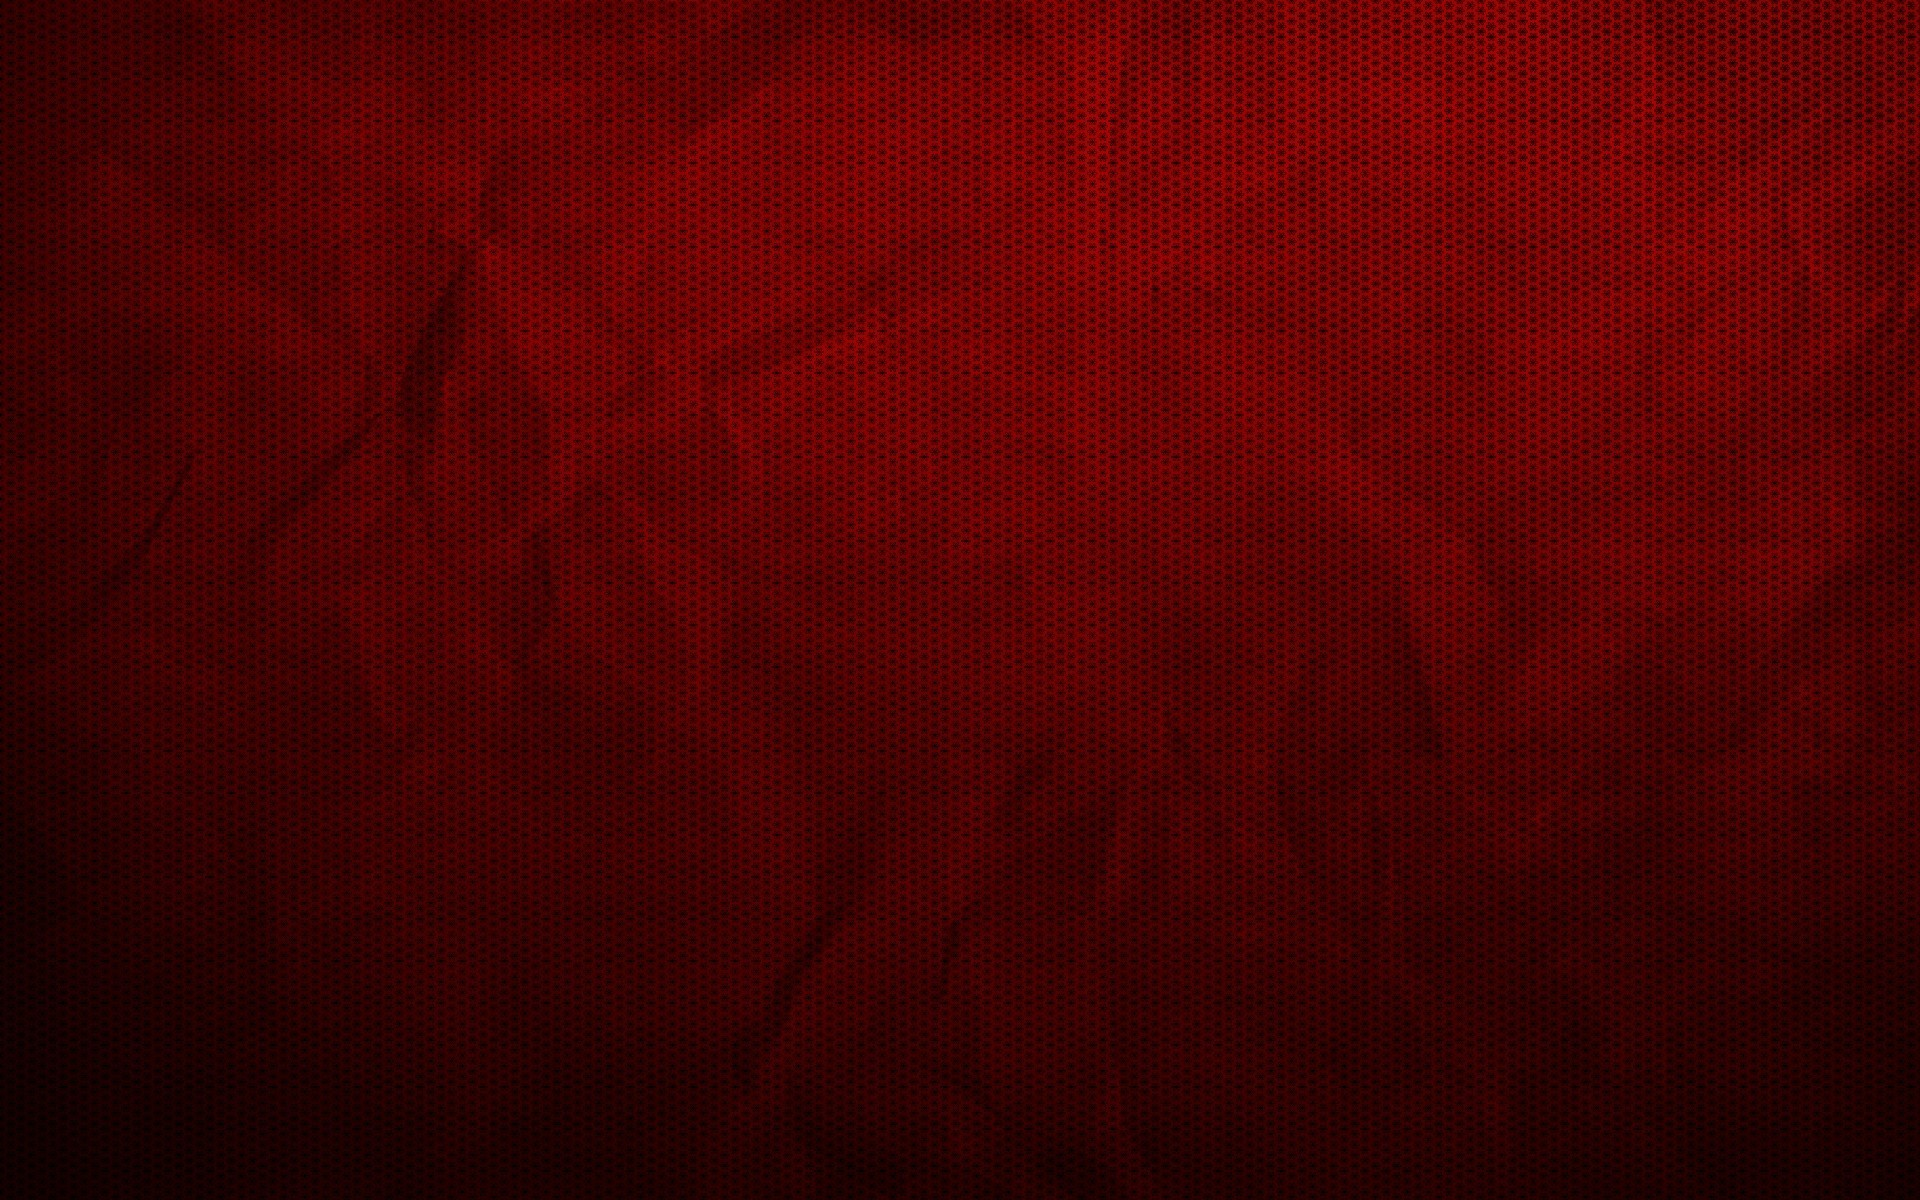 textured red wallpaper 183��